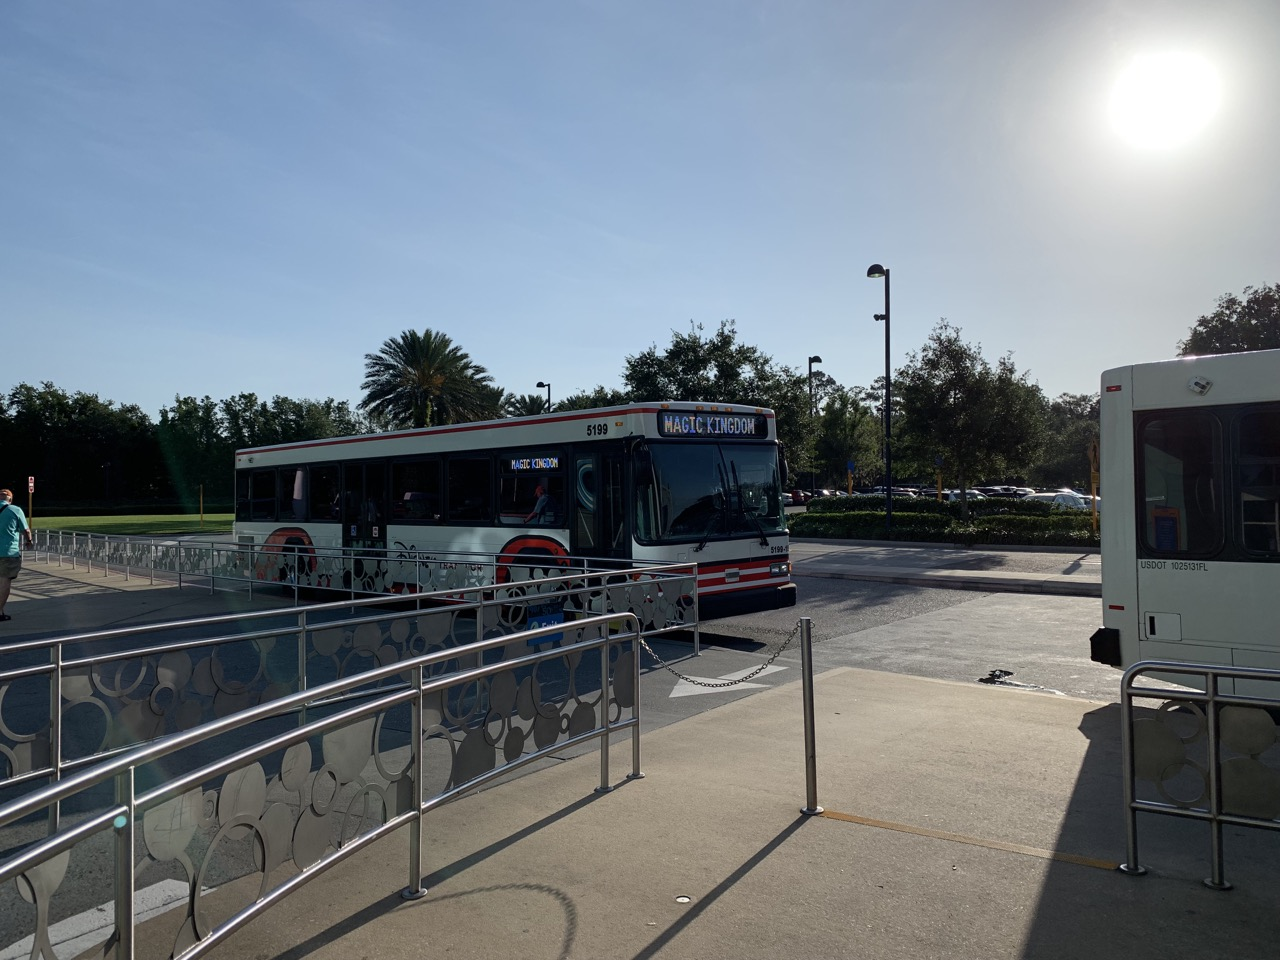 disney world trip report early summer 2019 day five 02 bus.jpeg